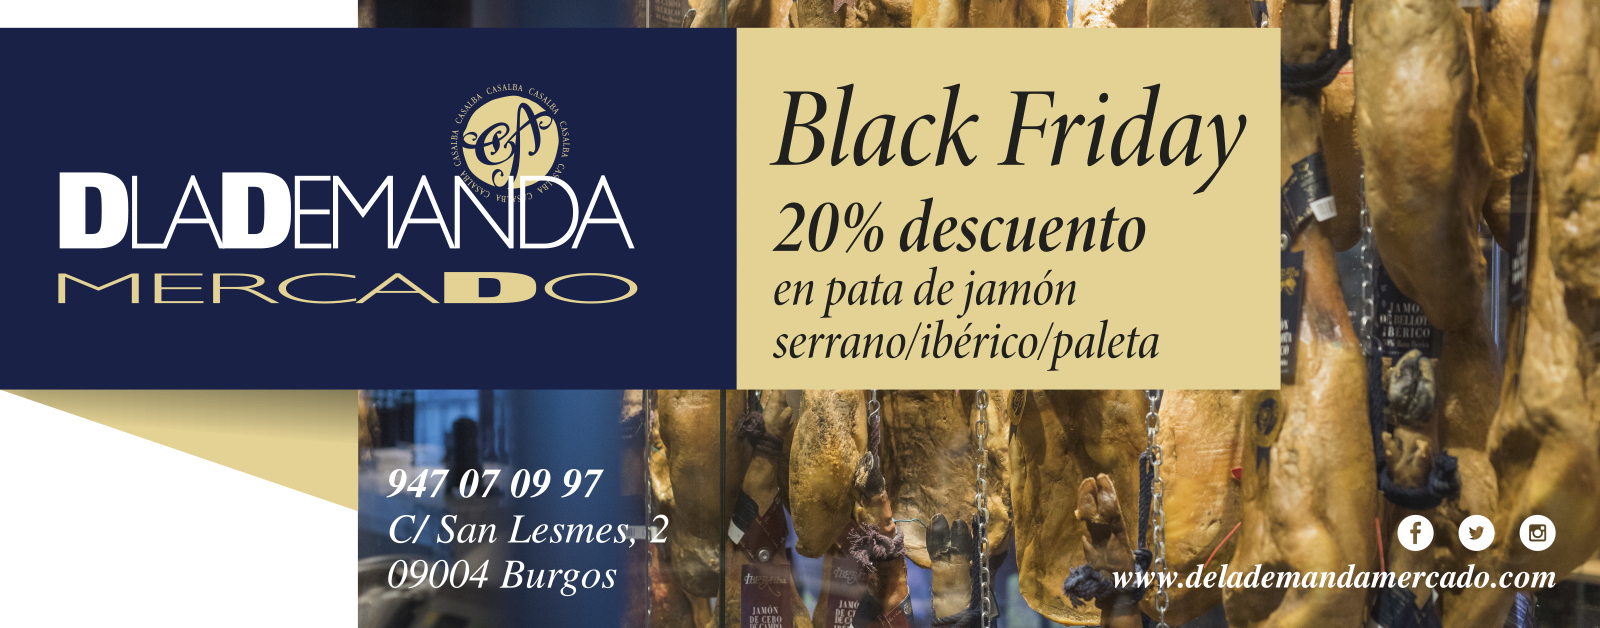 Black Friday DlaDemanda Mercado